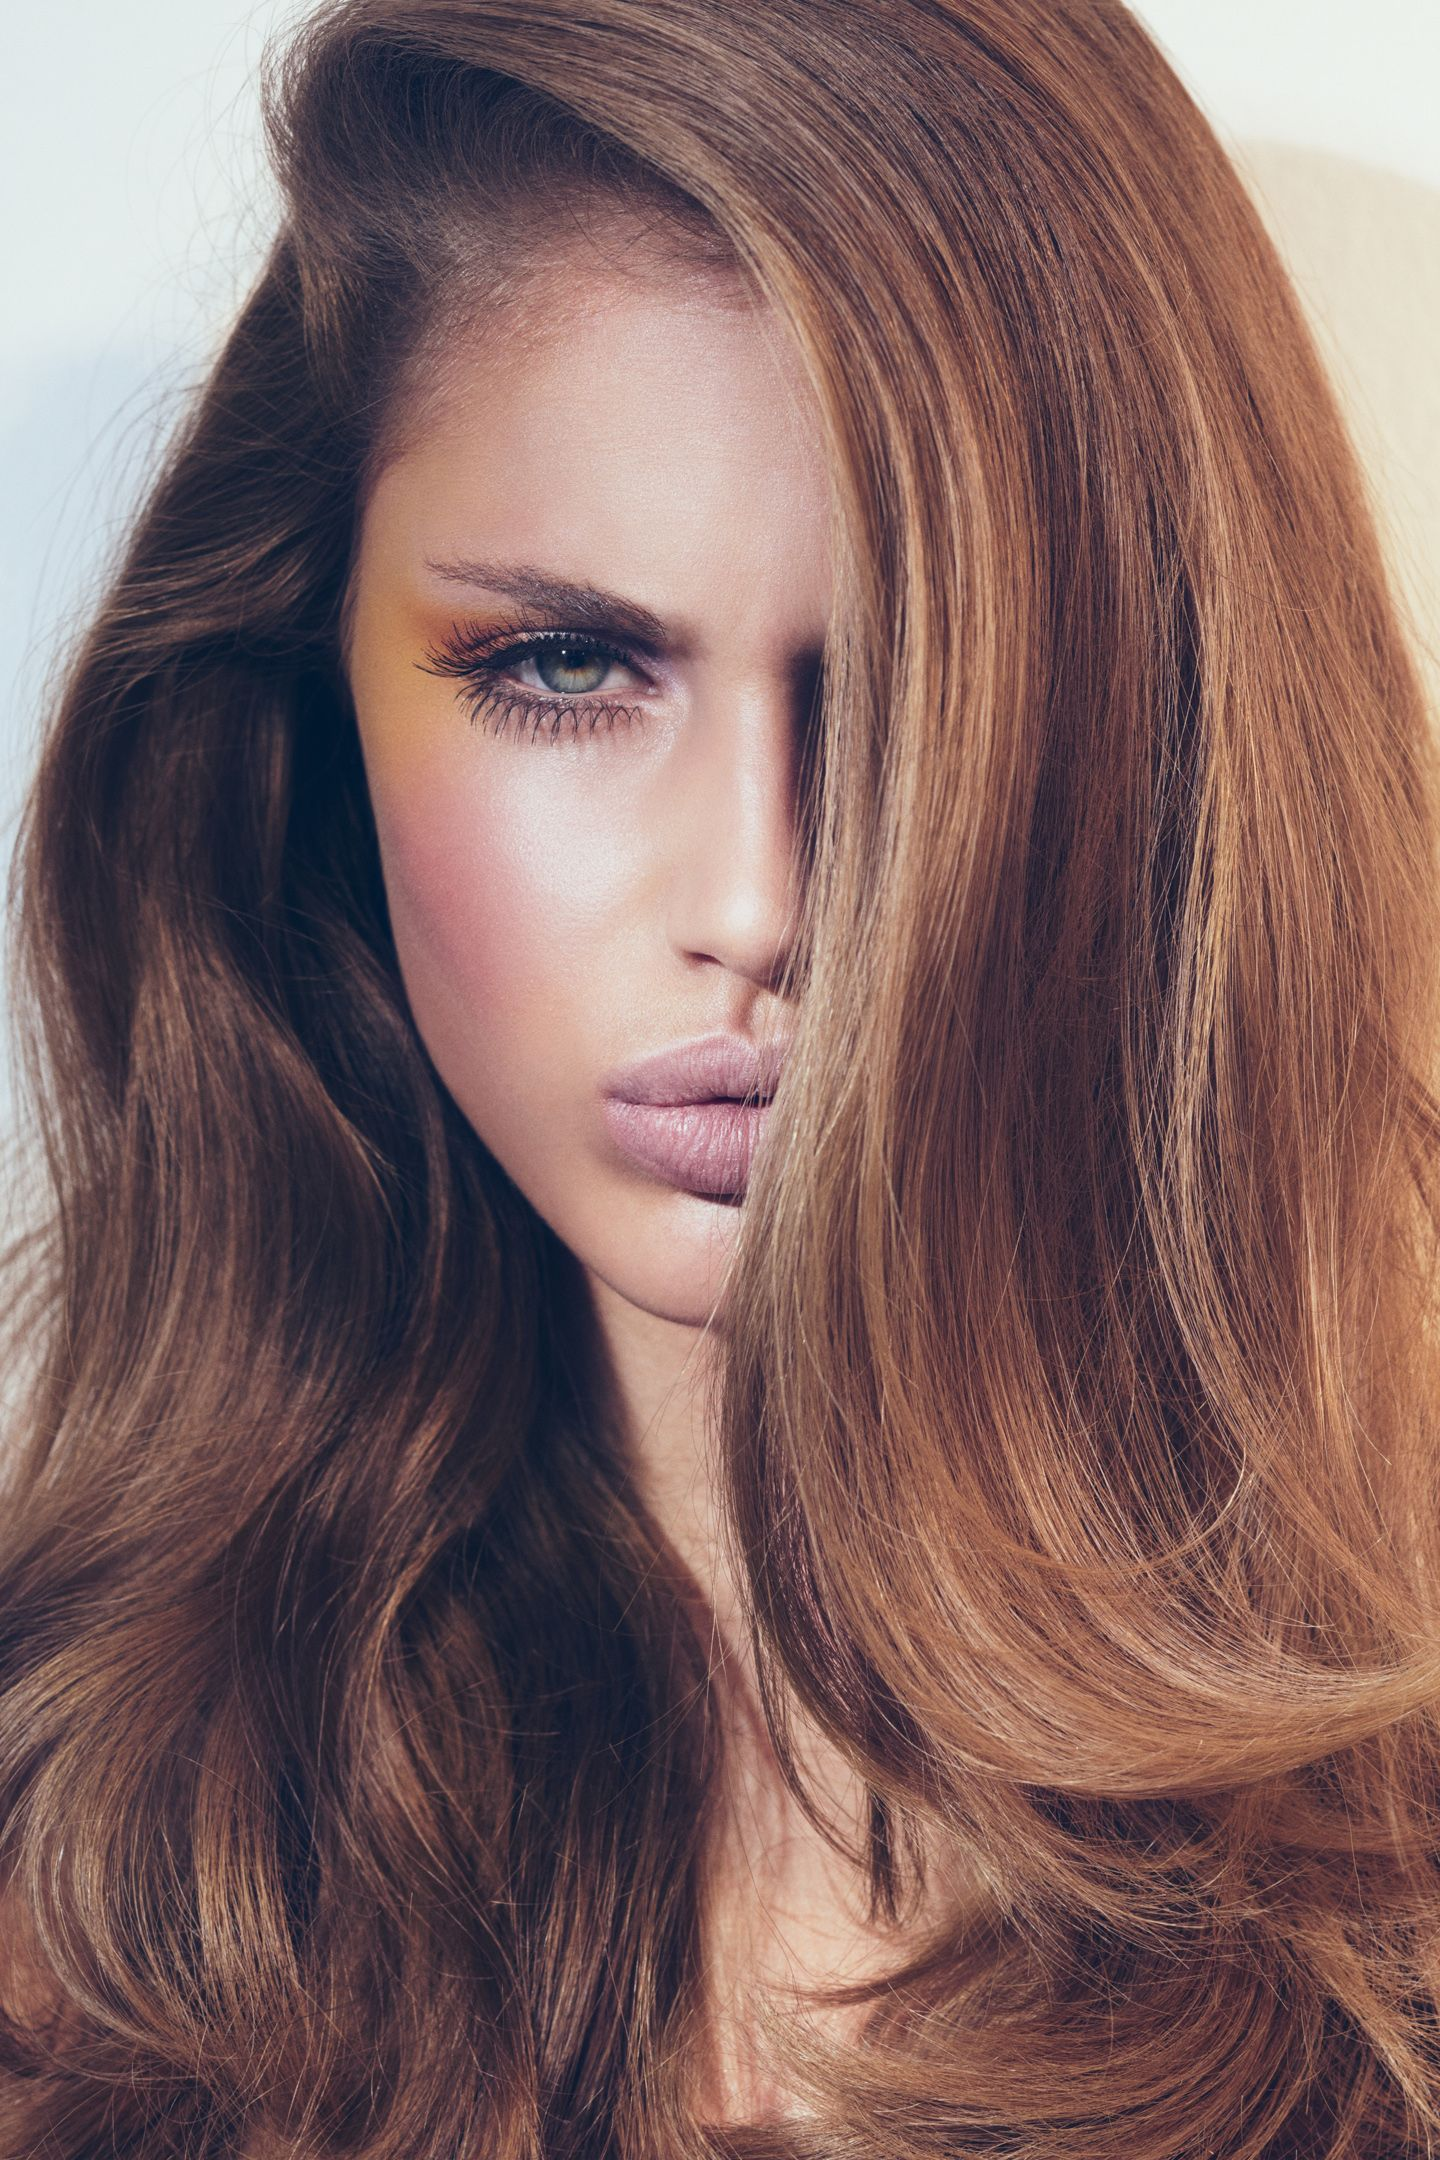 Pin by inspirational boards on editorials pinterest hair makeup